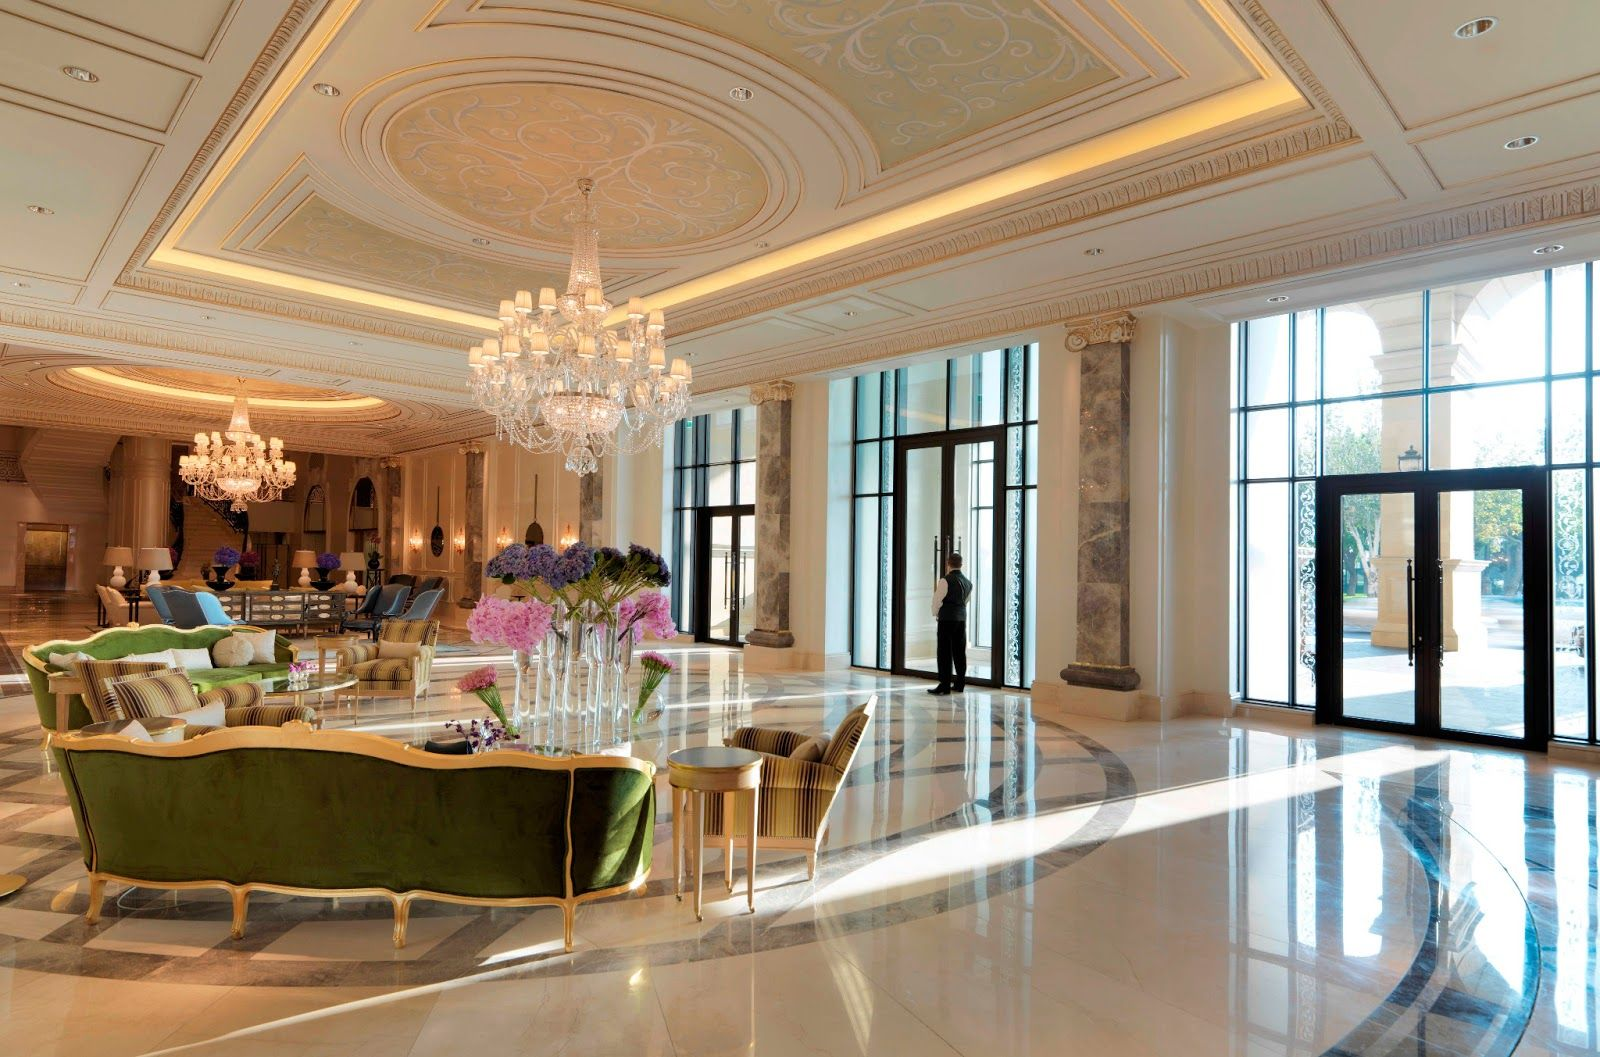 The Style Examiner Four Seasons Hotels Unveil New Property In Baku Hotel Interiors Lobby Interior Design Hotel